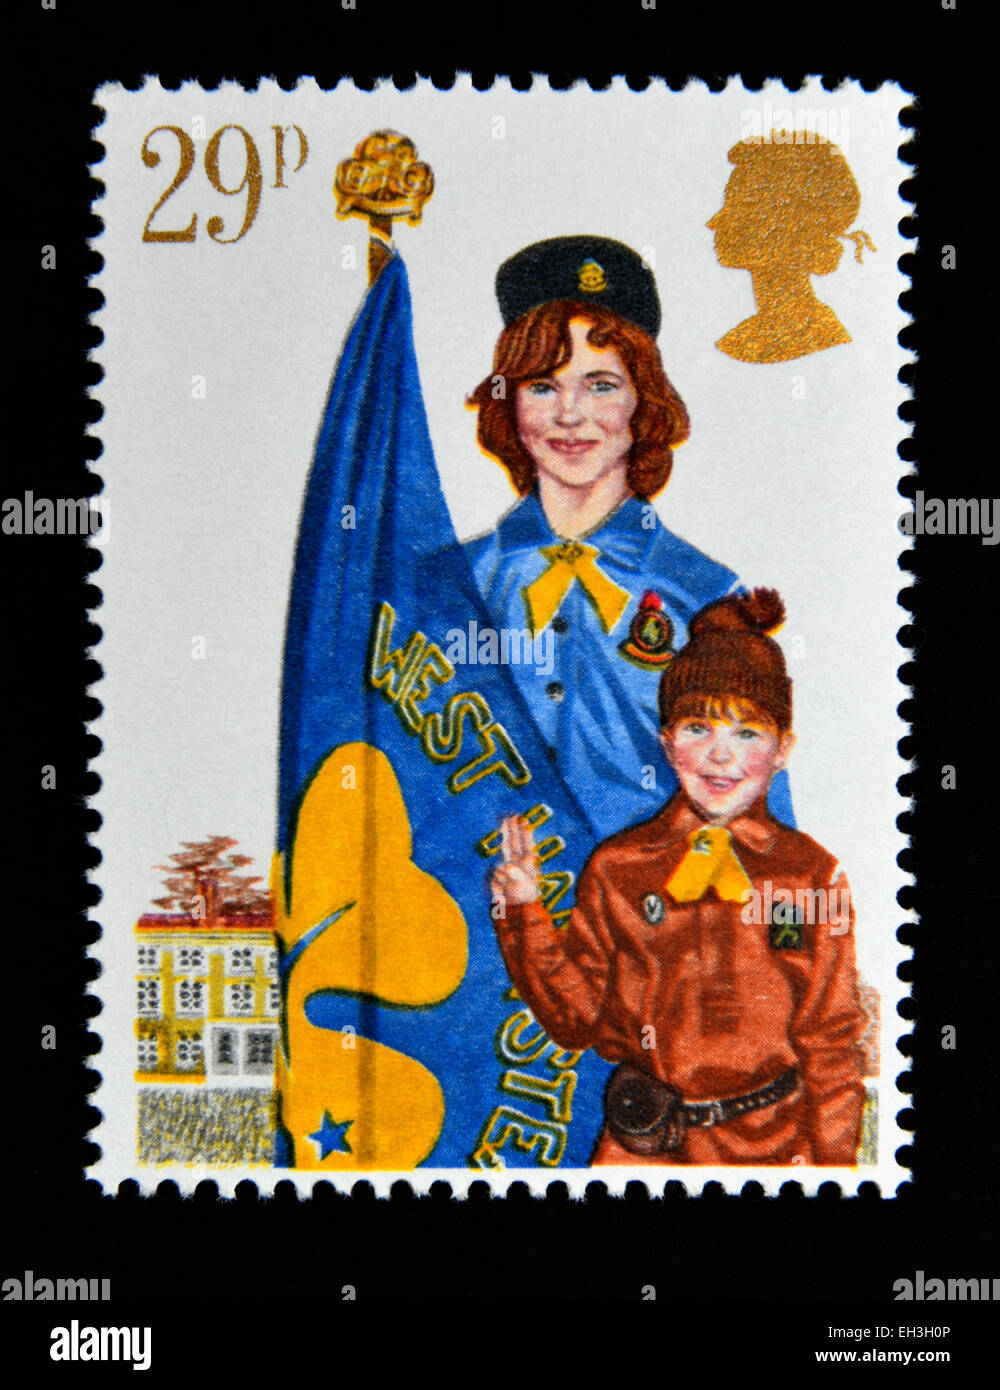 Postage stamp. Great Britain. Queen Elizabeth II. 1982. Youth Organisations. Girl Guide Movement. 29p. - Stock Image